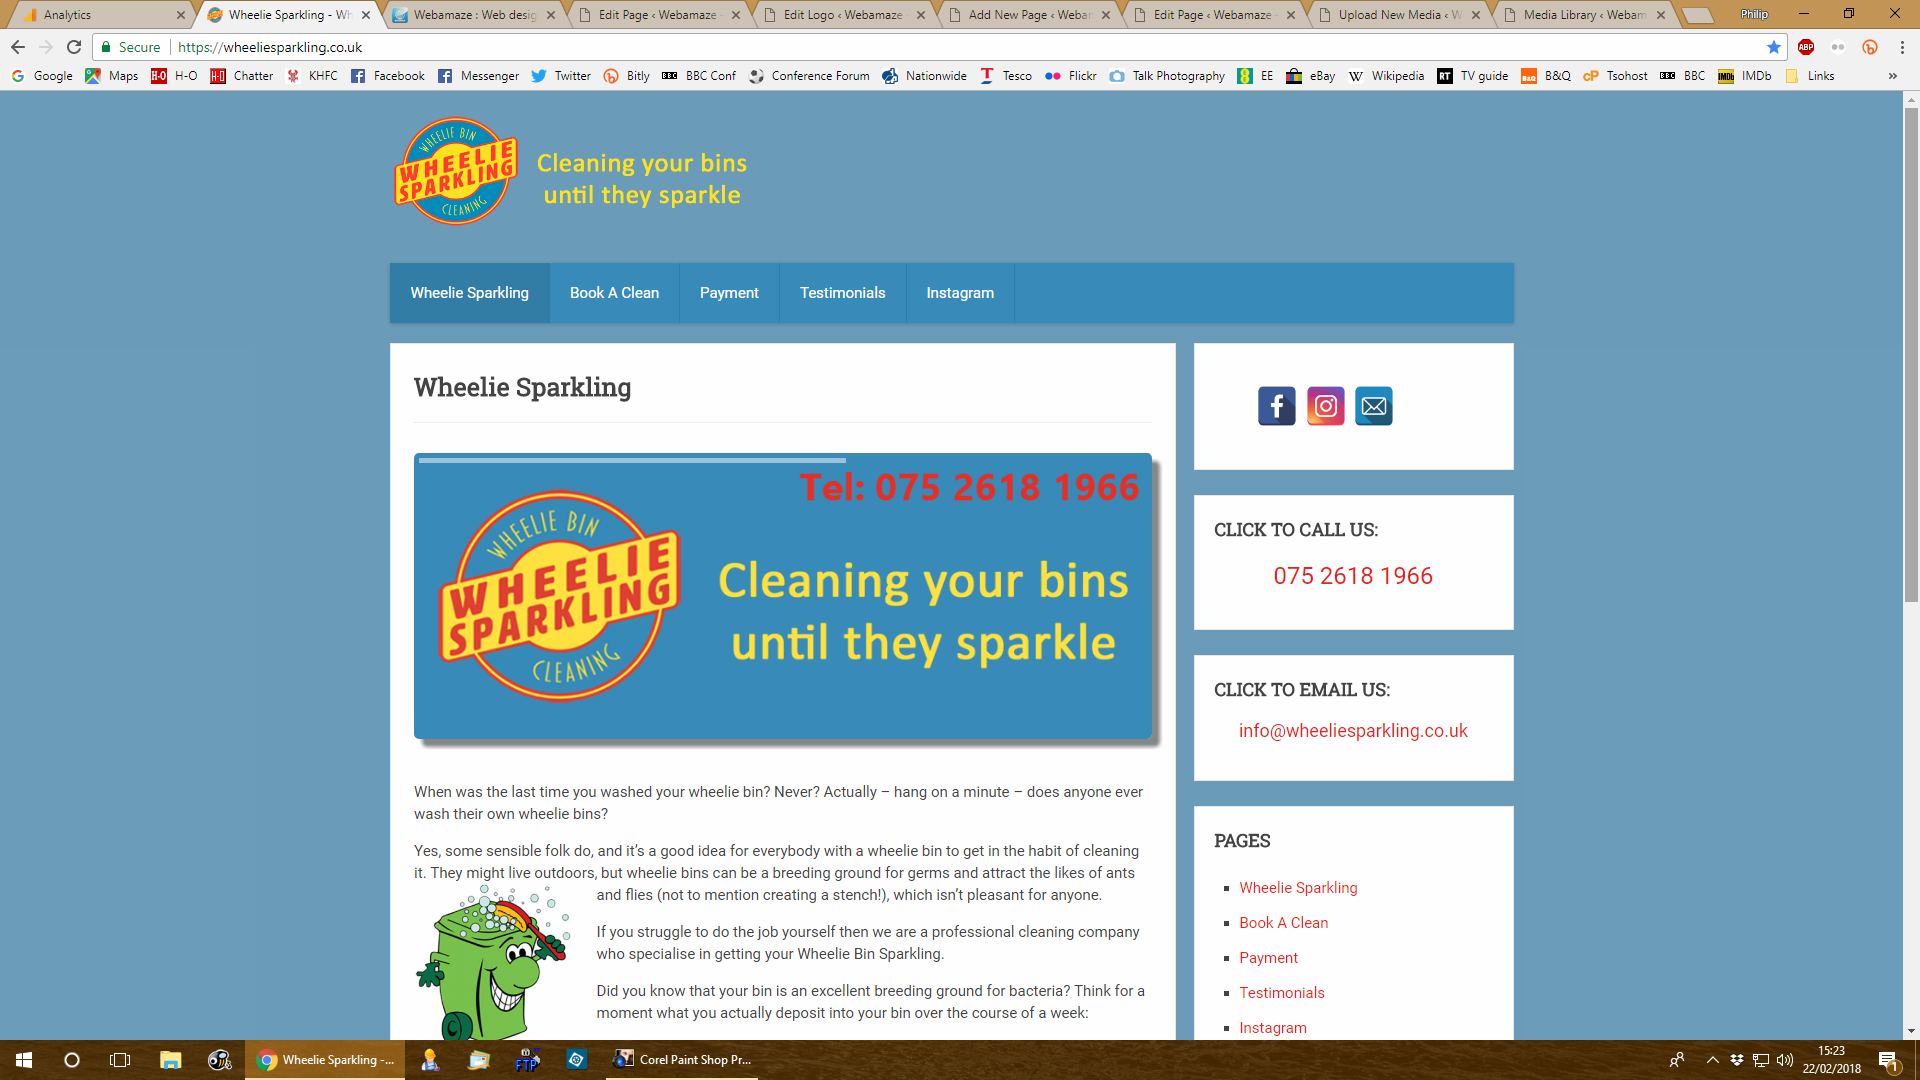 Wheelie Sparkling - A start up company in Stourbridge wanted a simple and quick to use website for their wheelie bin cleaning company. They asked for colours to match their logo without being too bright and over the top.